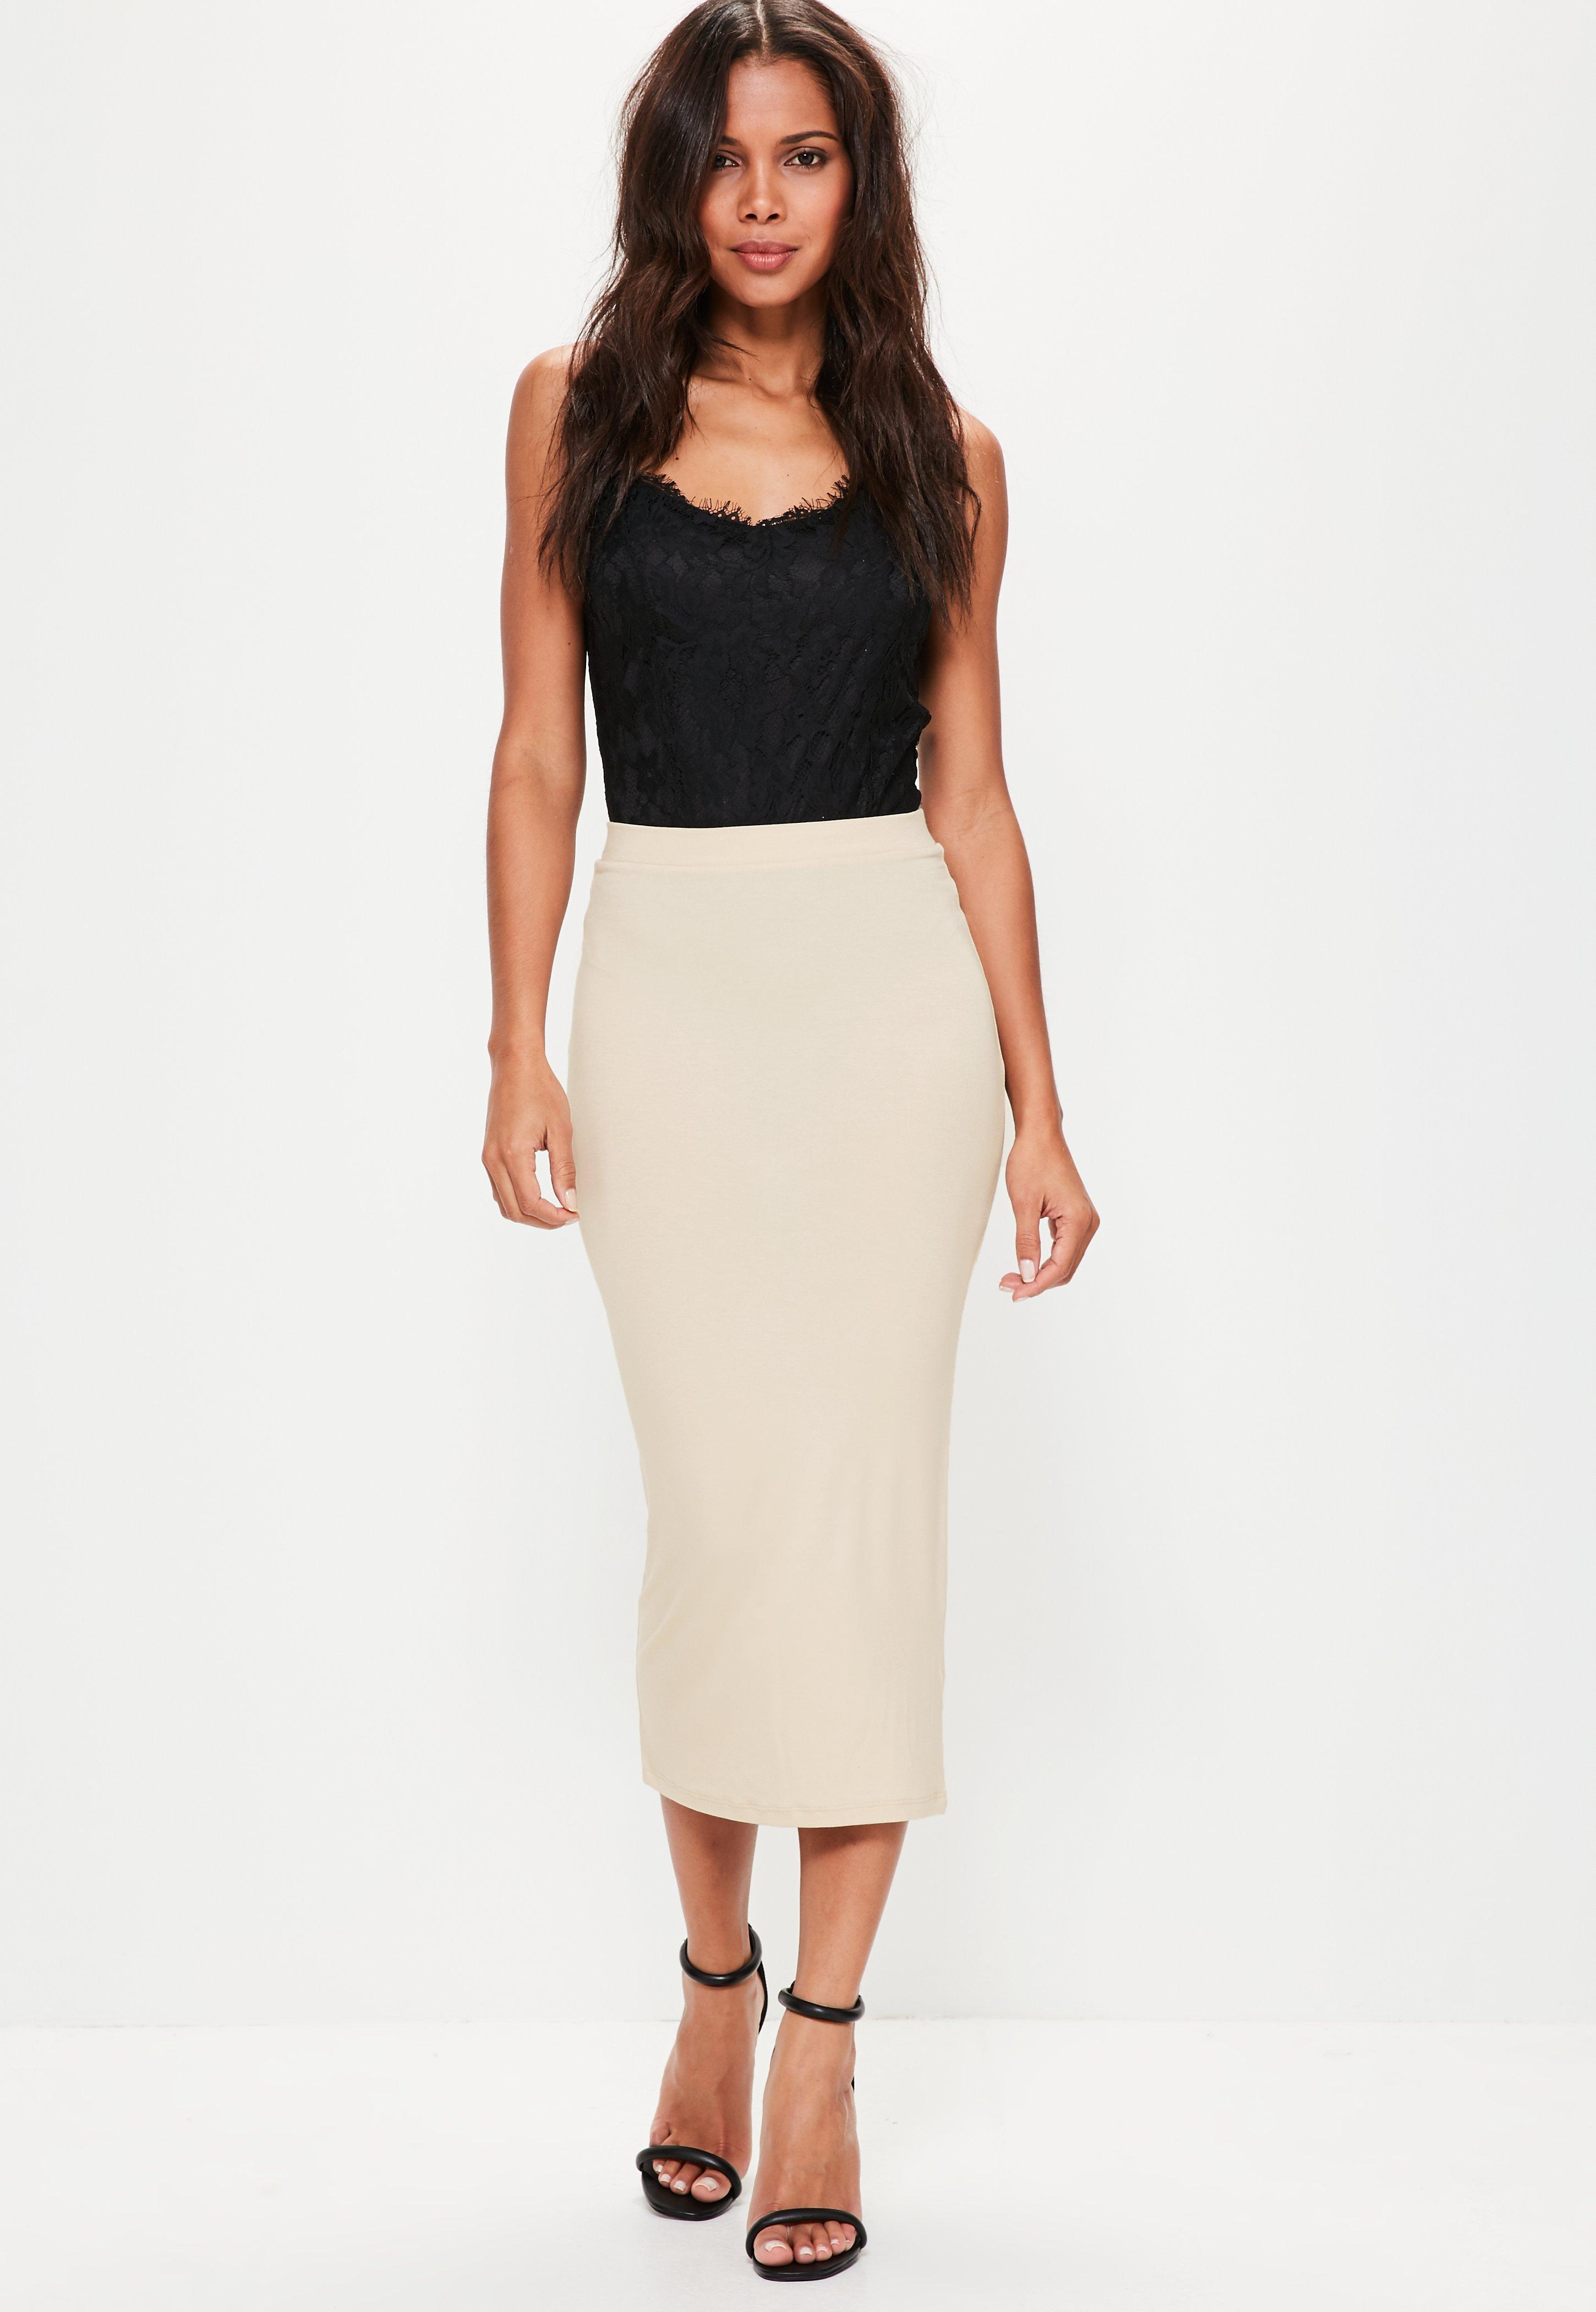 8a8b6dda8 Missguided Nude Jersey Longline Midi Skirt in Natural - Lyst